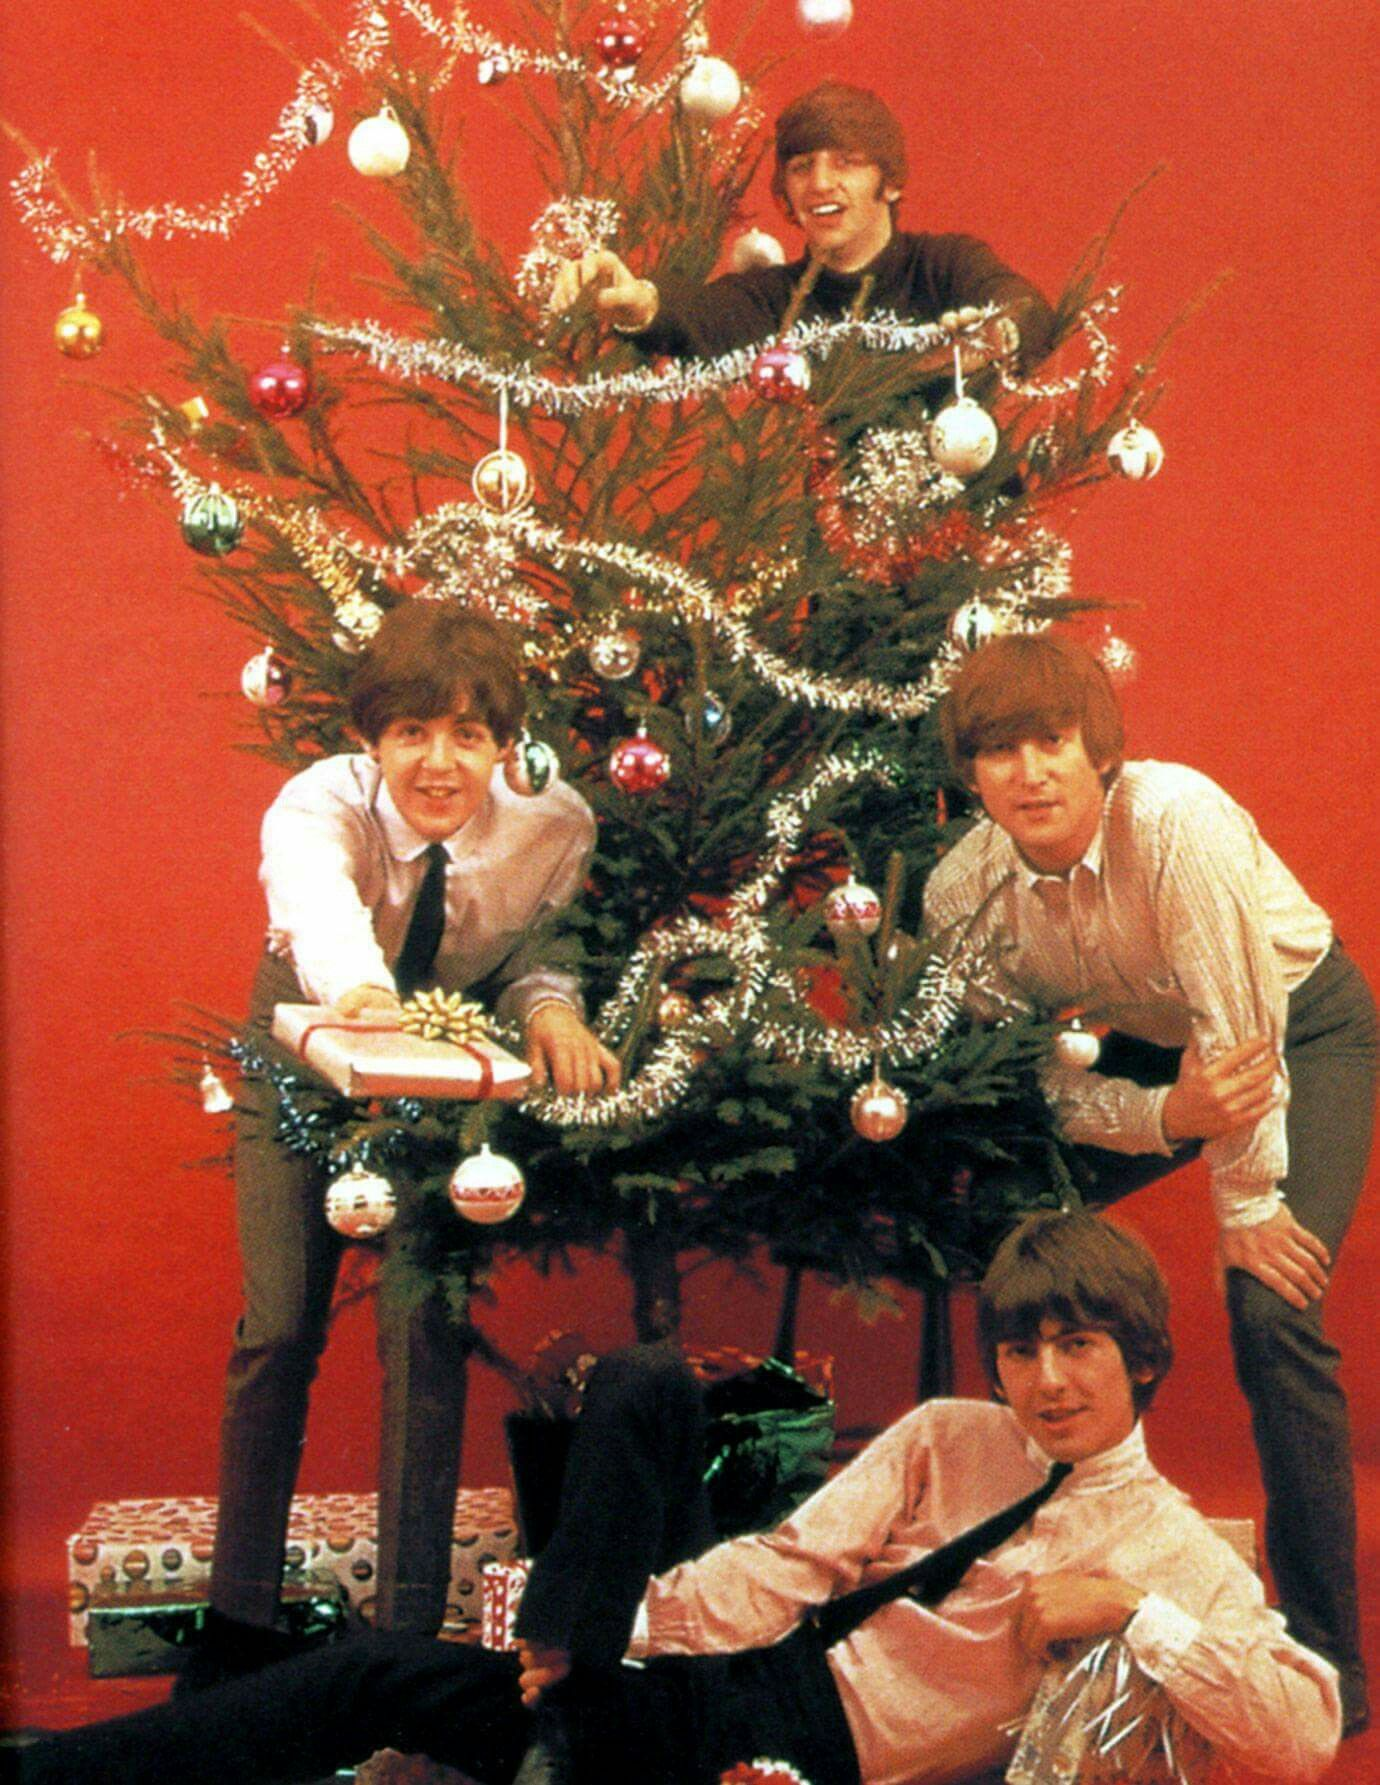 The Beatles Christmas | Beatles Story in 2018 | Pinterest | The ...